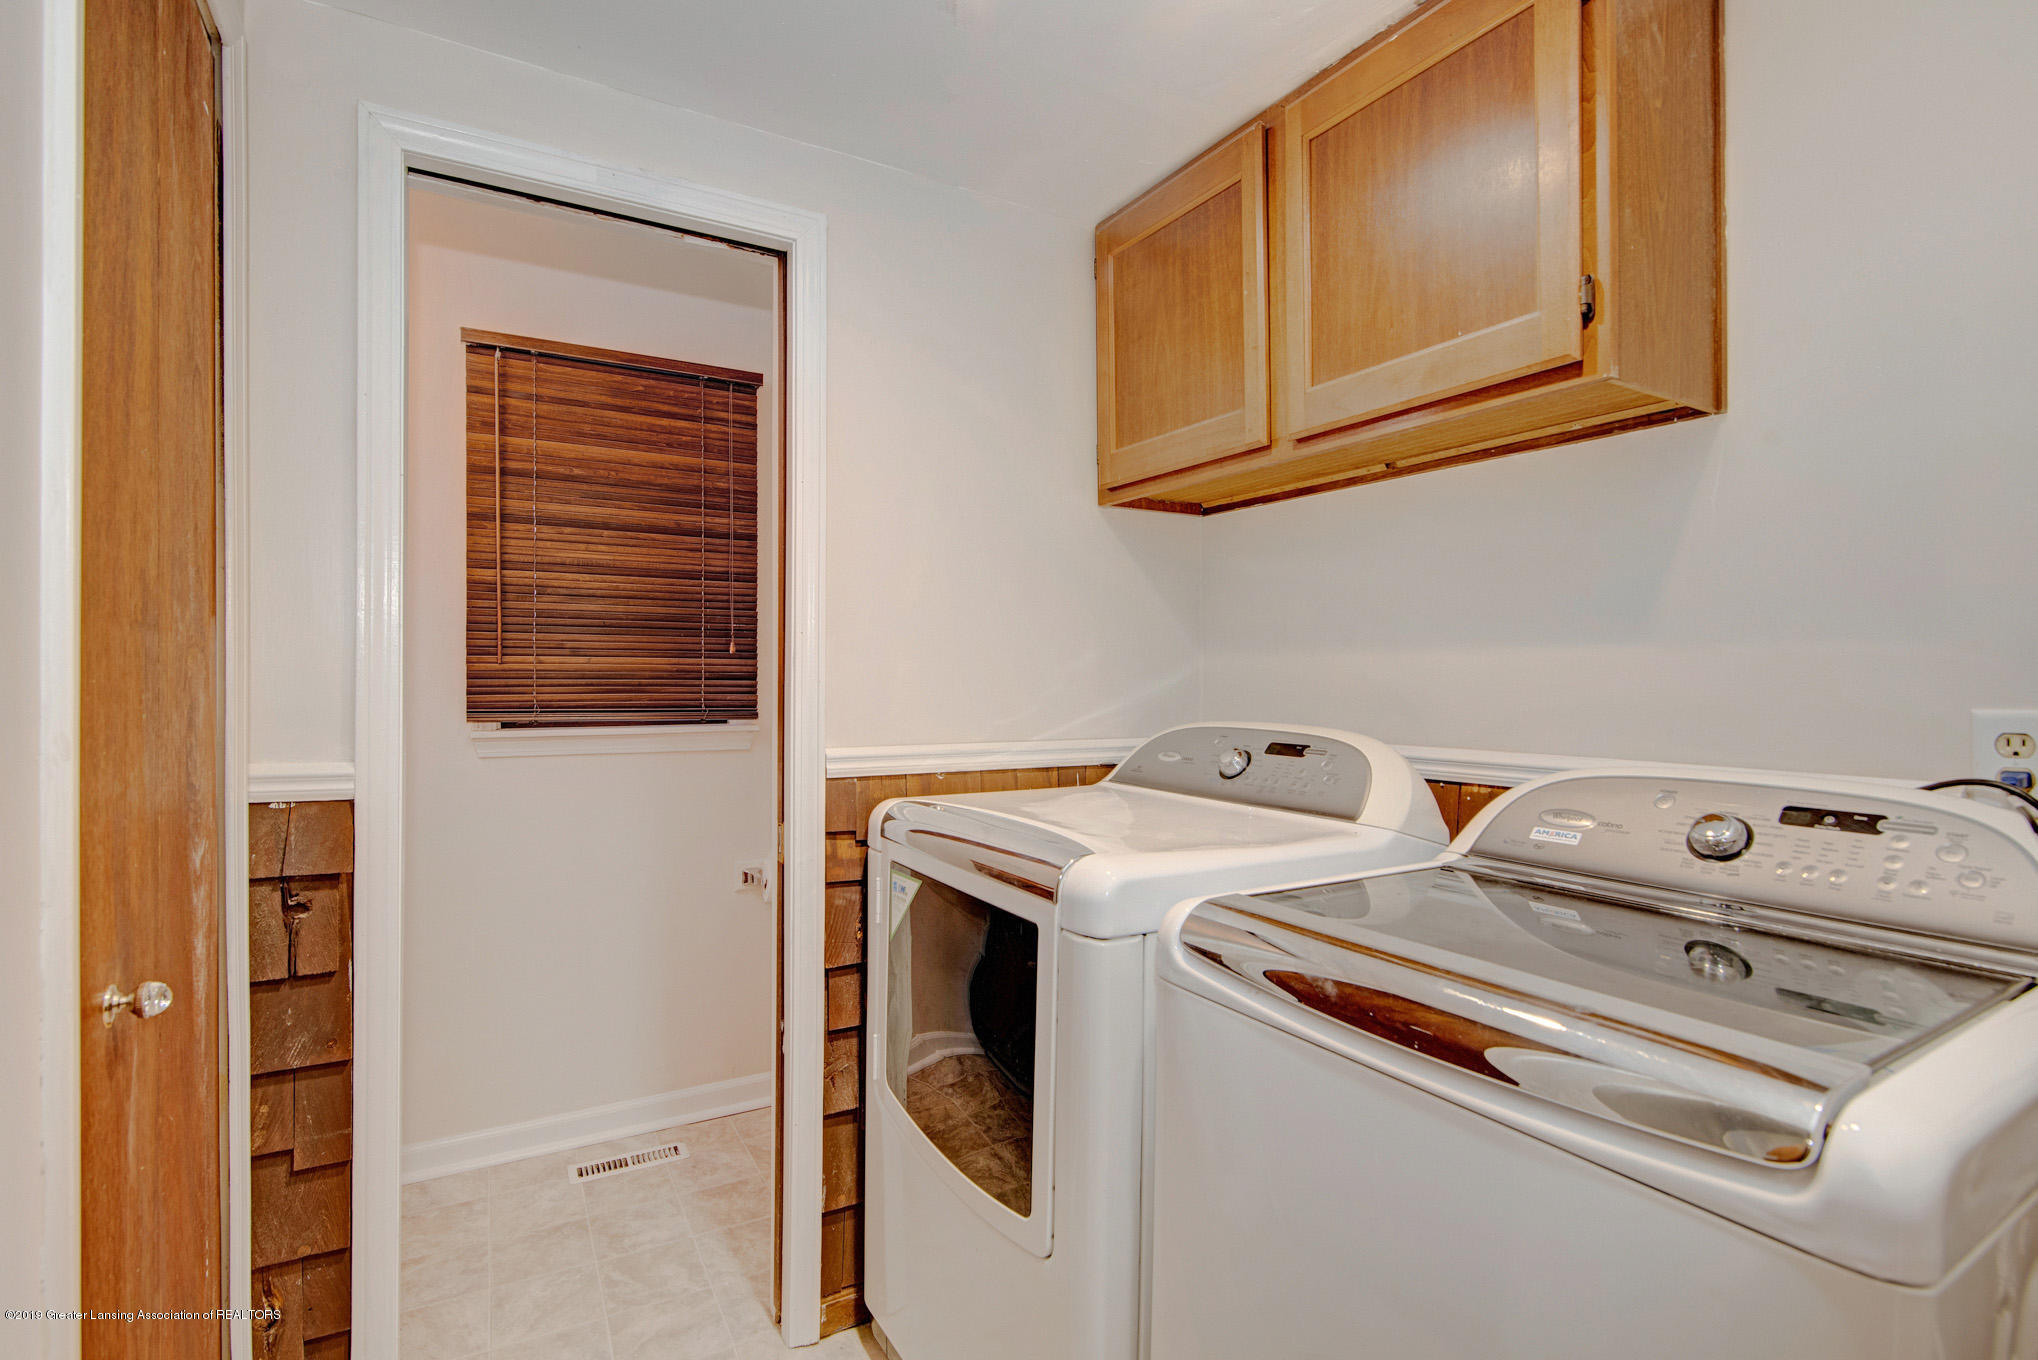 1417 Spearberry Ln - Laundry Center - 14